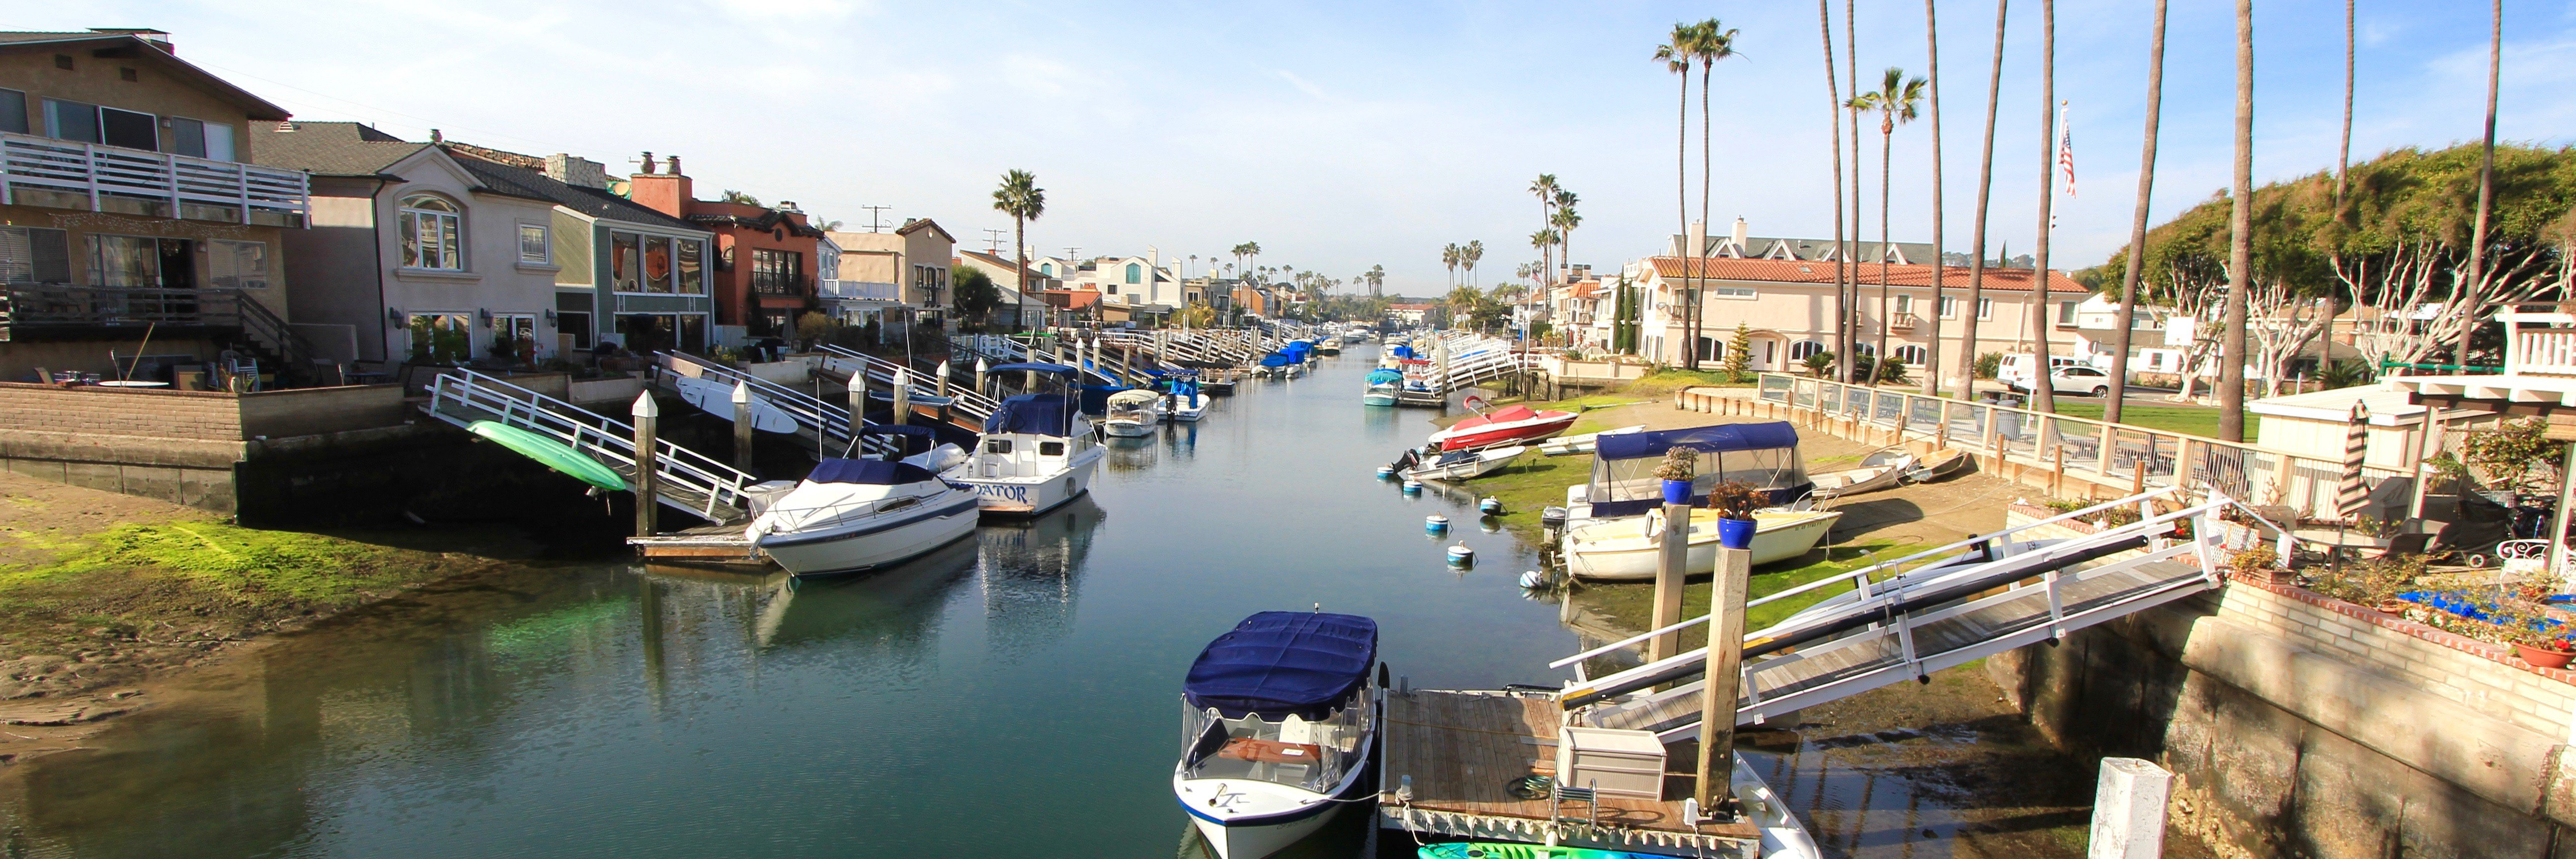 Newport Island is a community in Newport Beach, CA